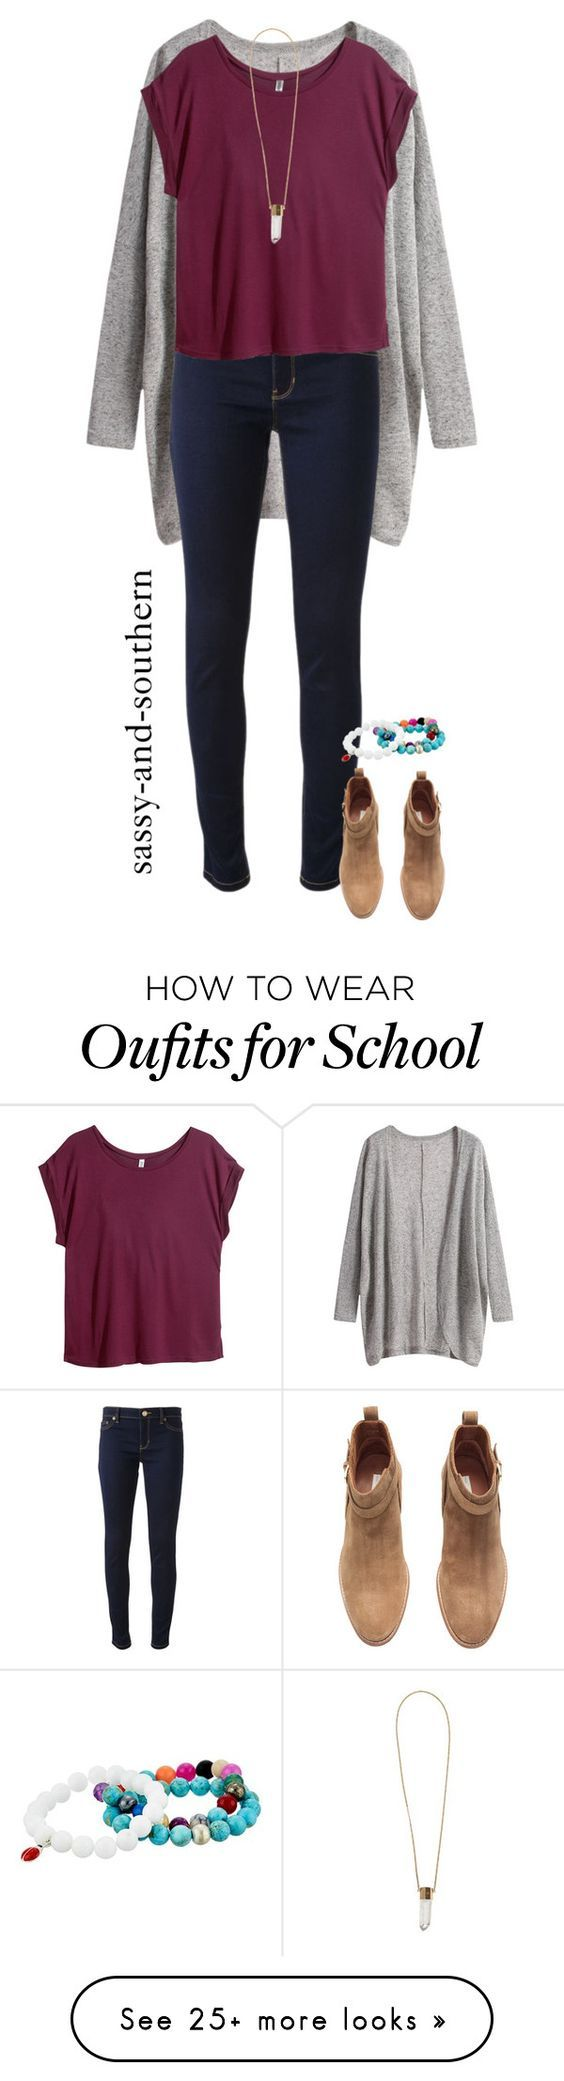 """school outfit"" by sassy-and-southern on Polyvore featuring Michael Kors, H&M, Chloé, Dee Berkley and sassysouthernfall:"